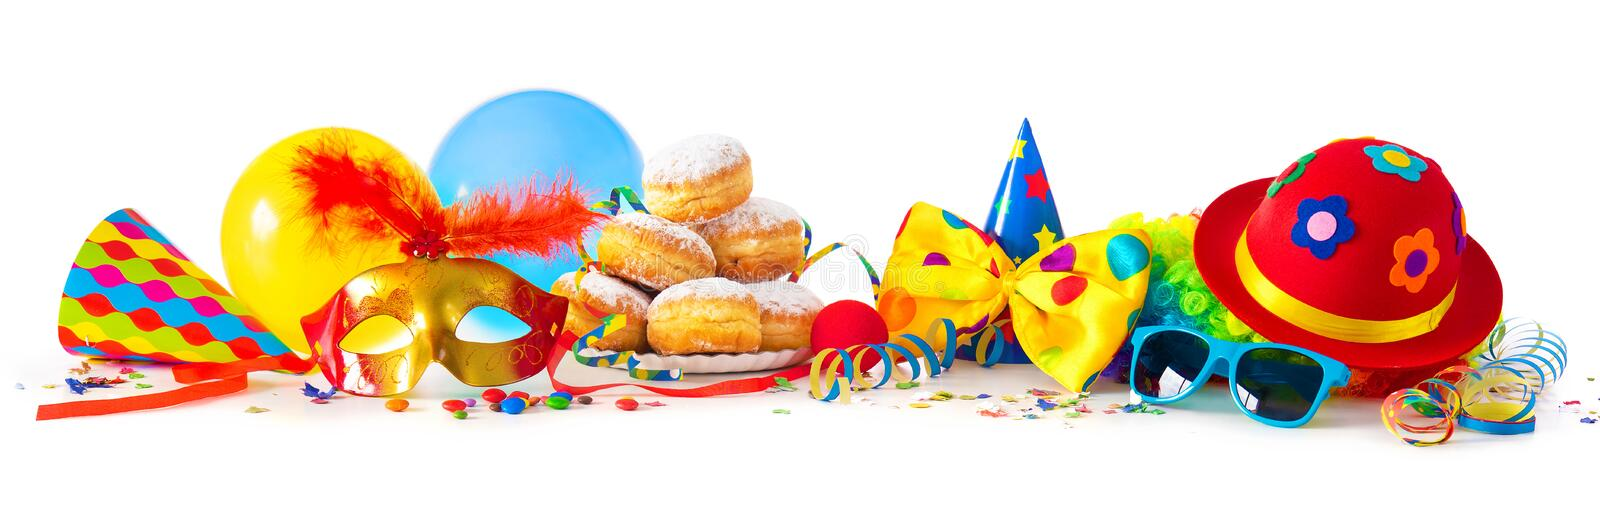 Carnival or party with donuts, balloons, streamers and confetti and funny face royalty free stock image